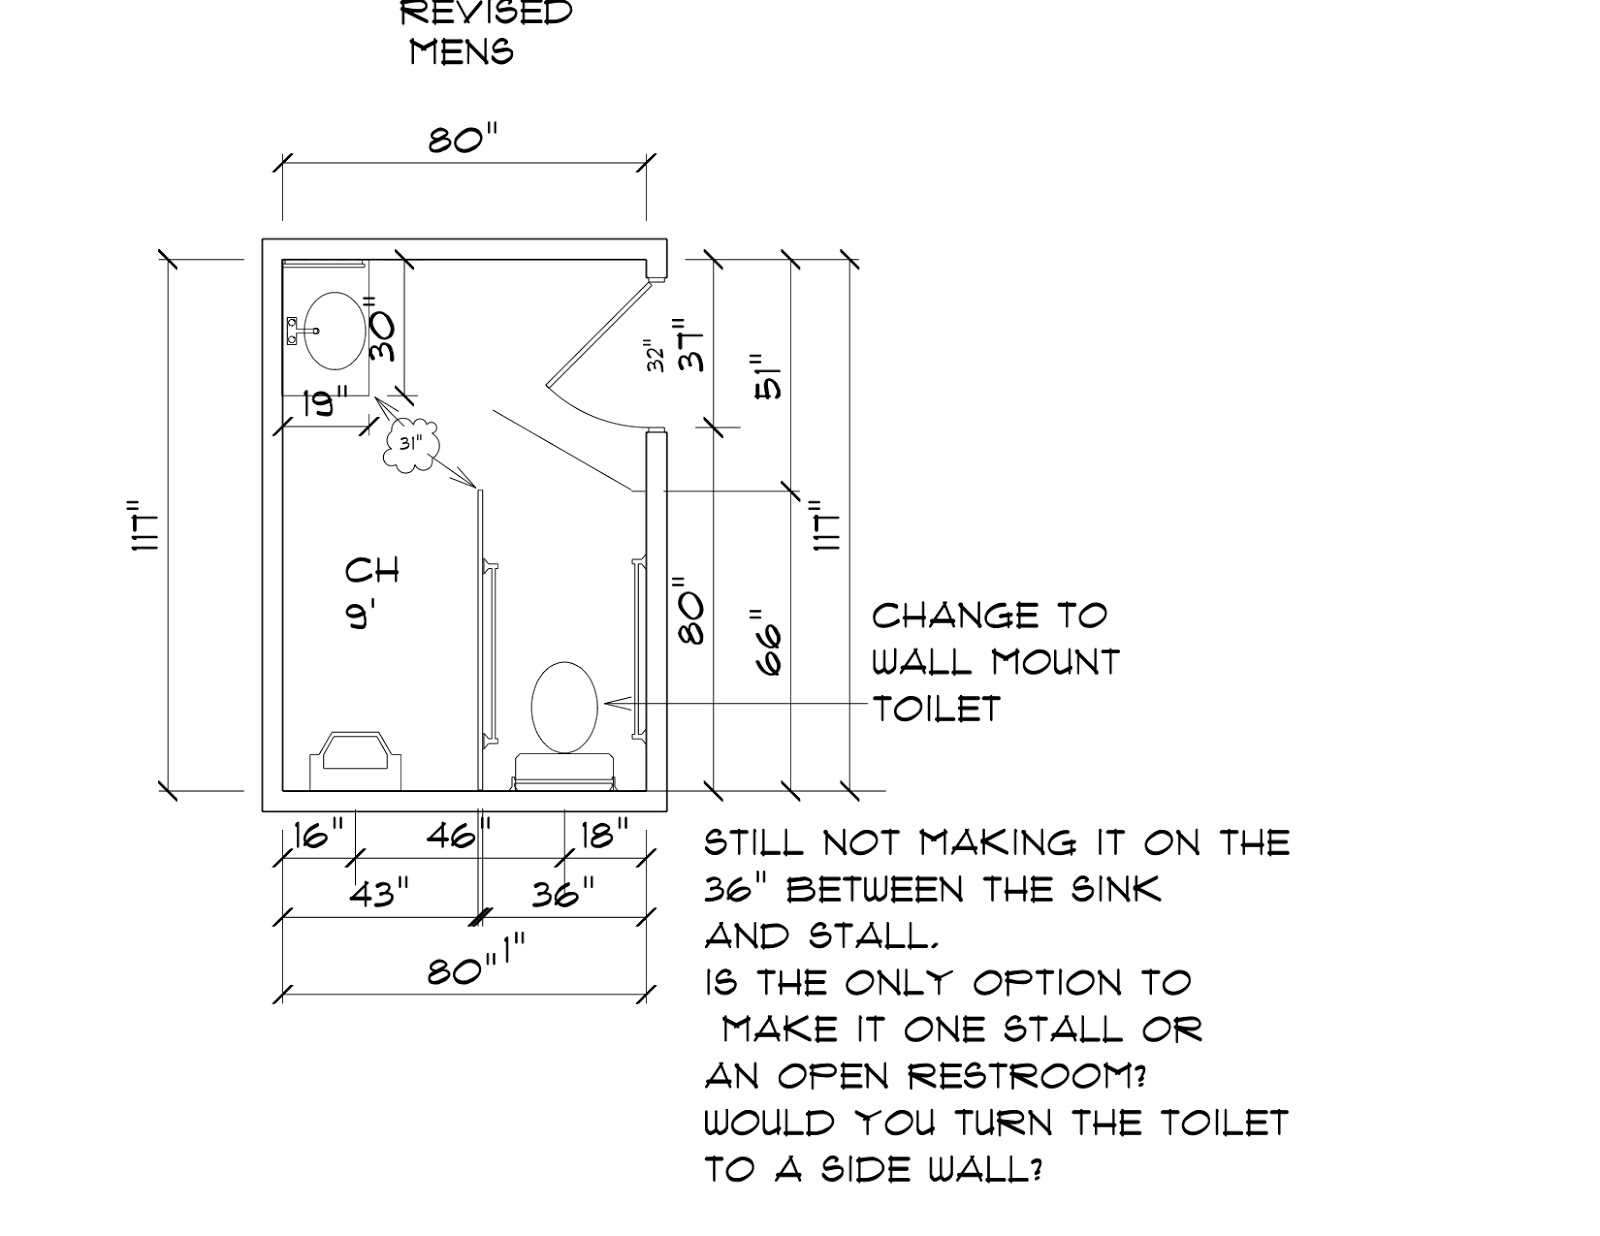 Bathroom Handicap Stalls ada: redesigning a public men's bathroom based on ada regulations